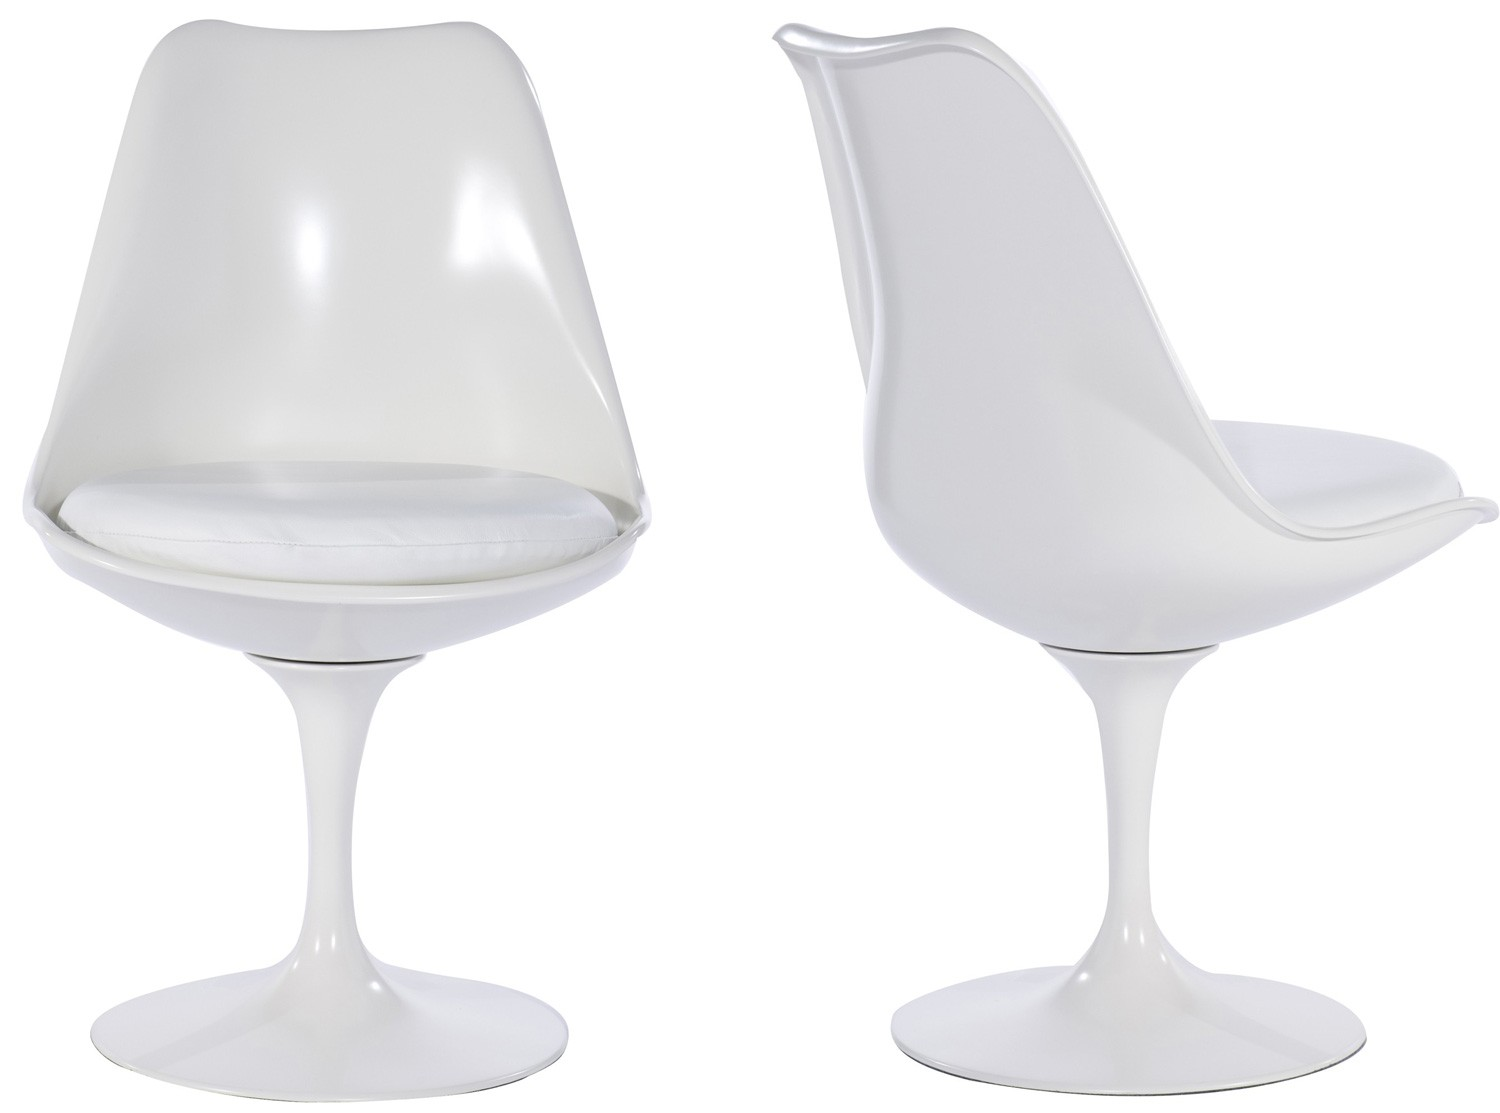 Tulip chairs- all about tulip chairs